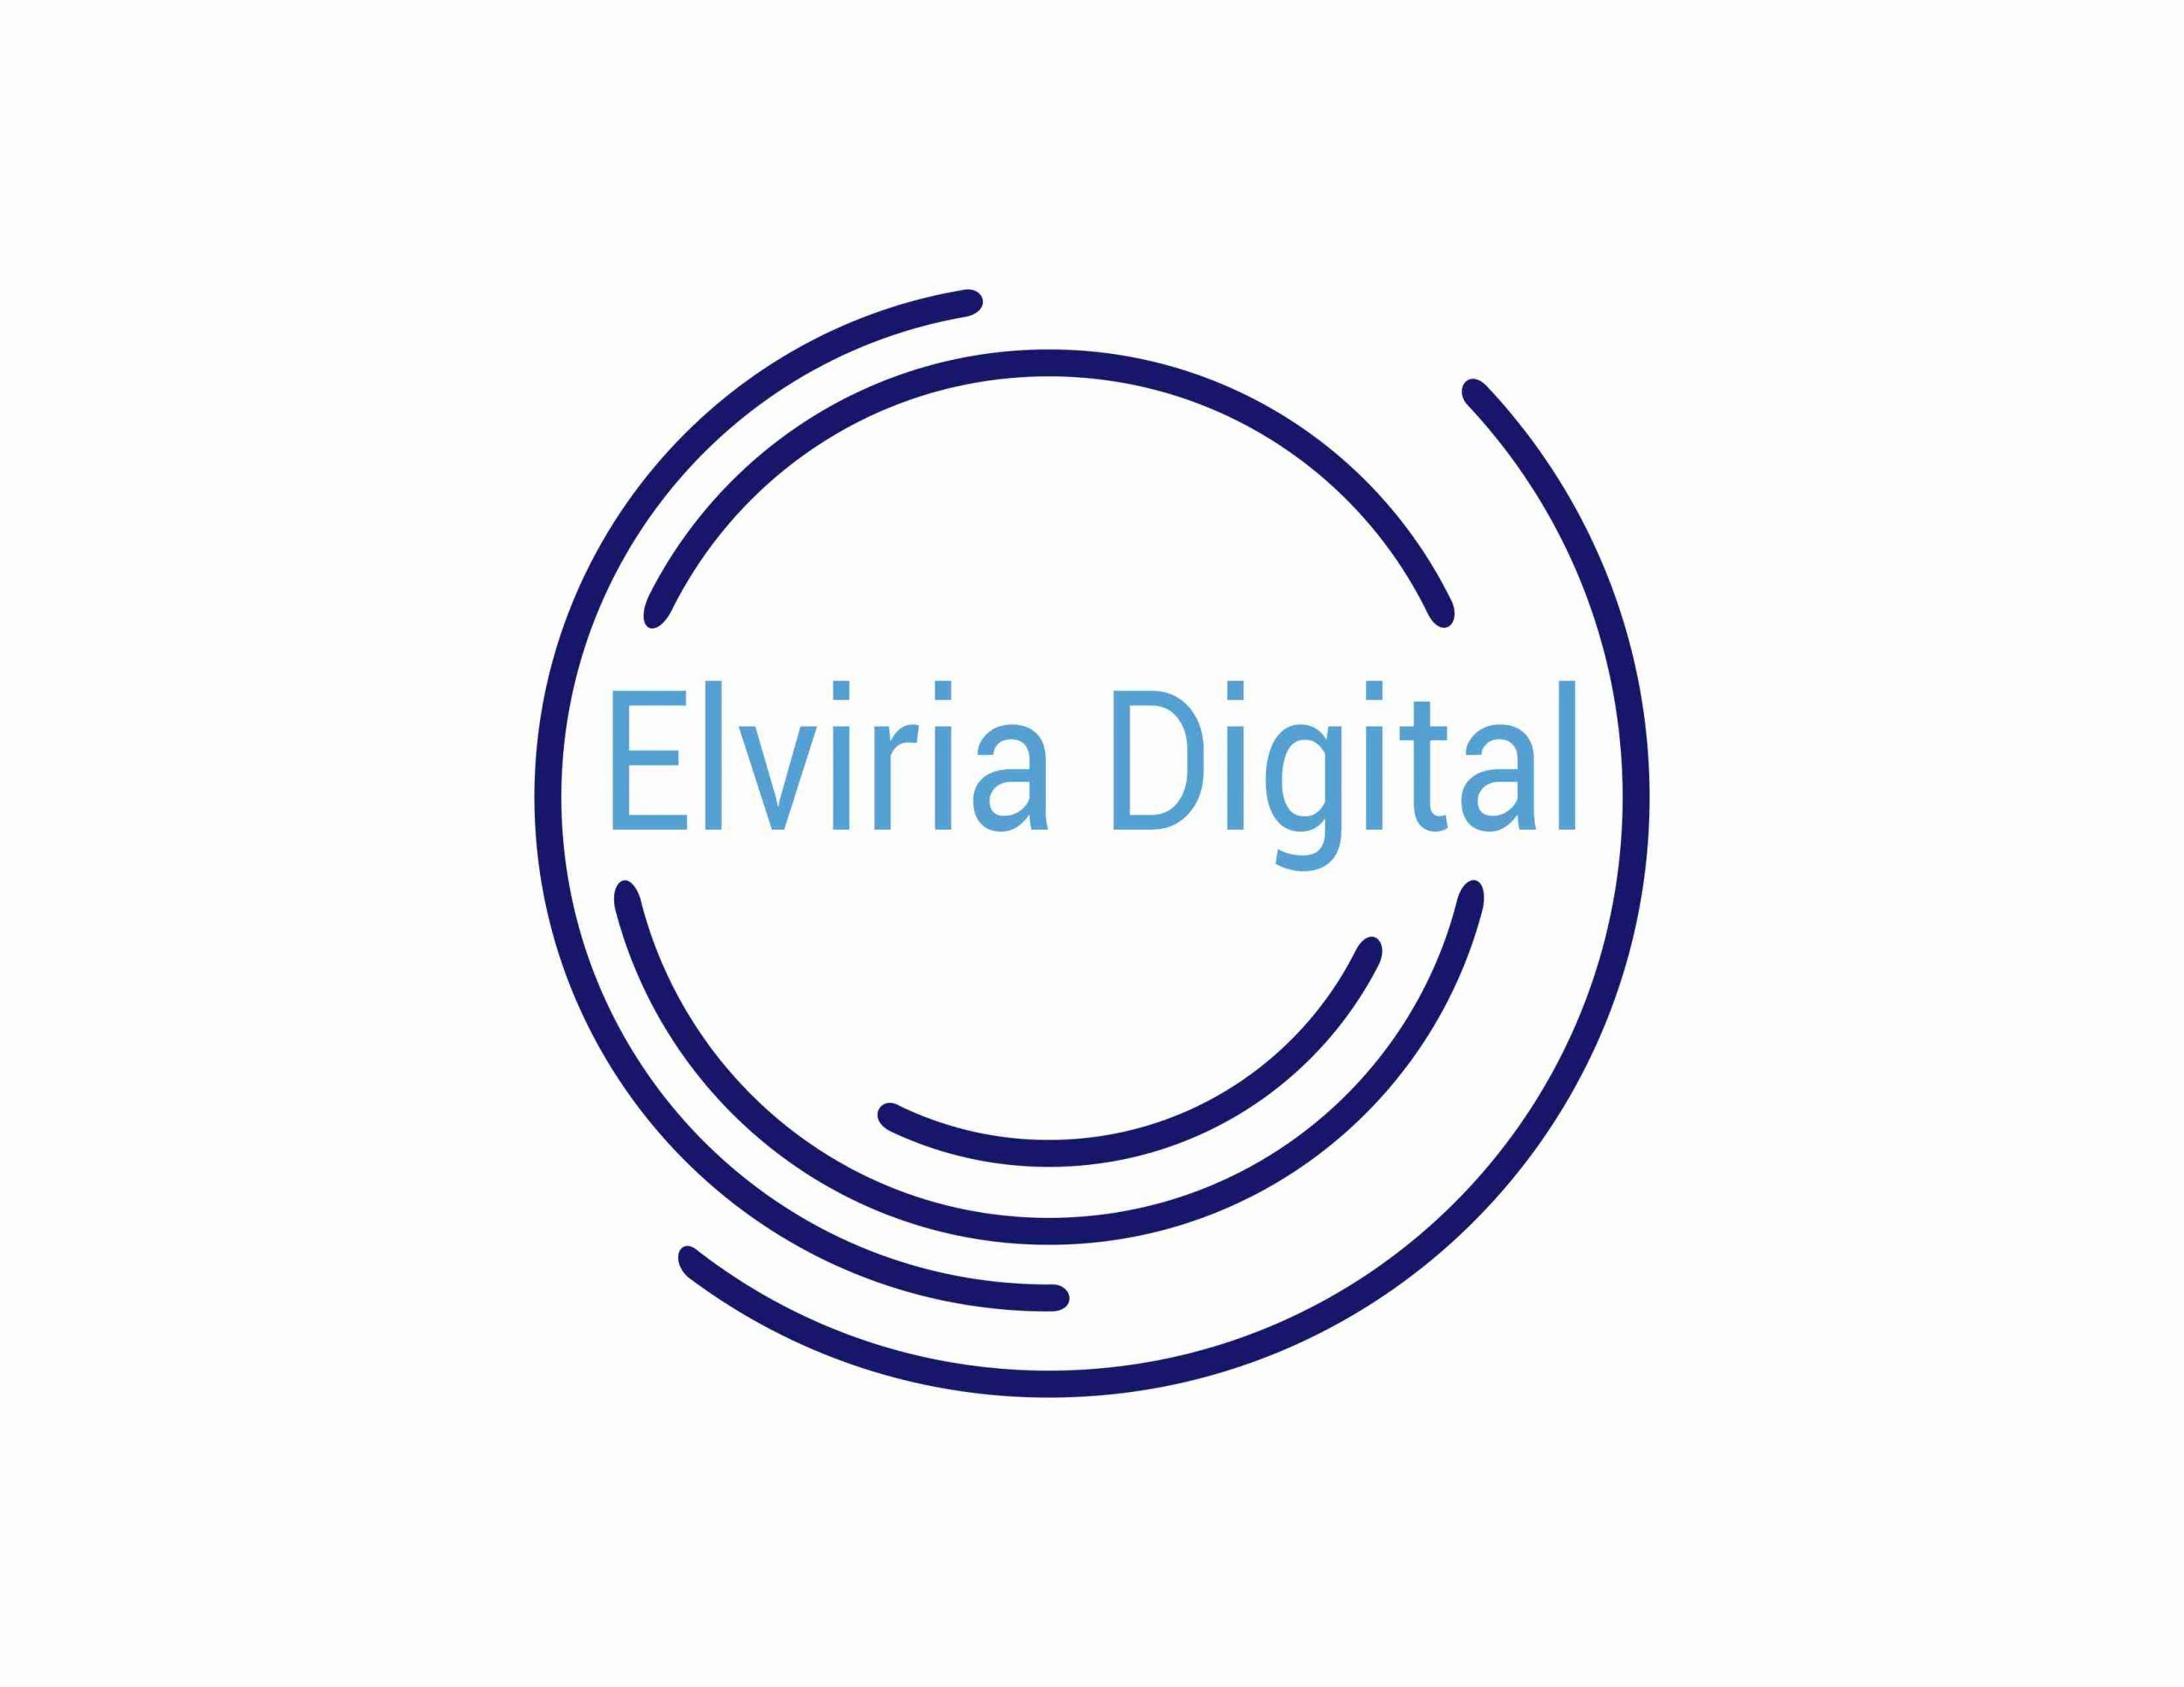 Elviria Digital